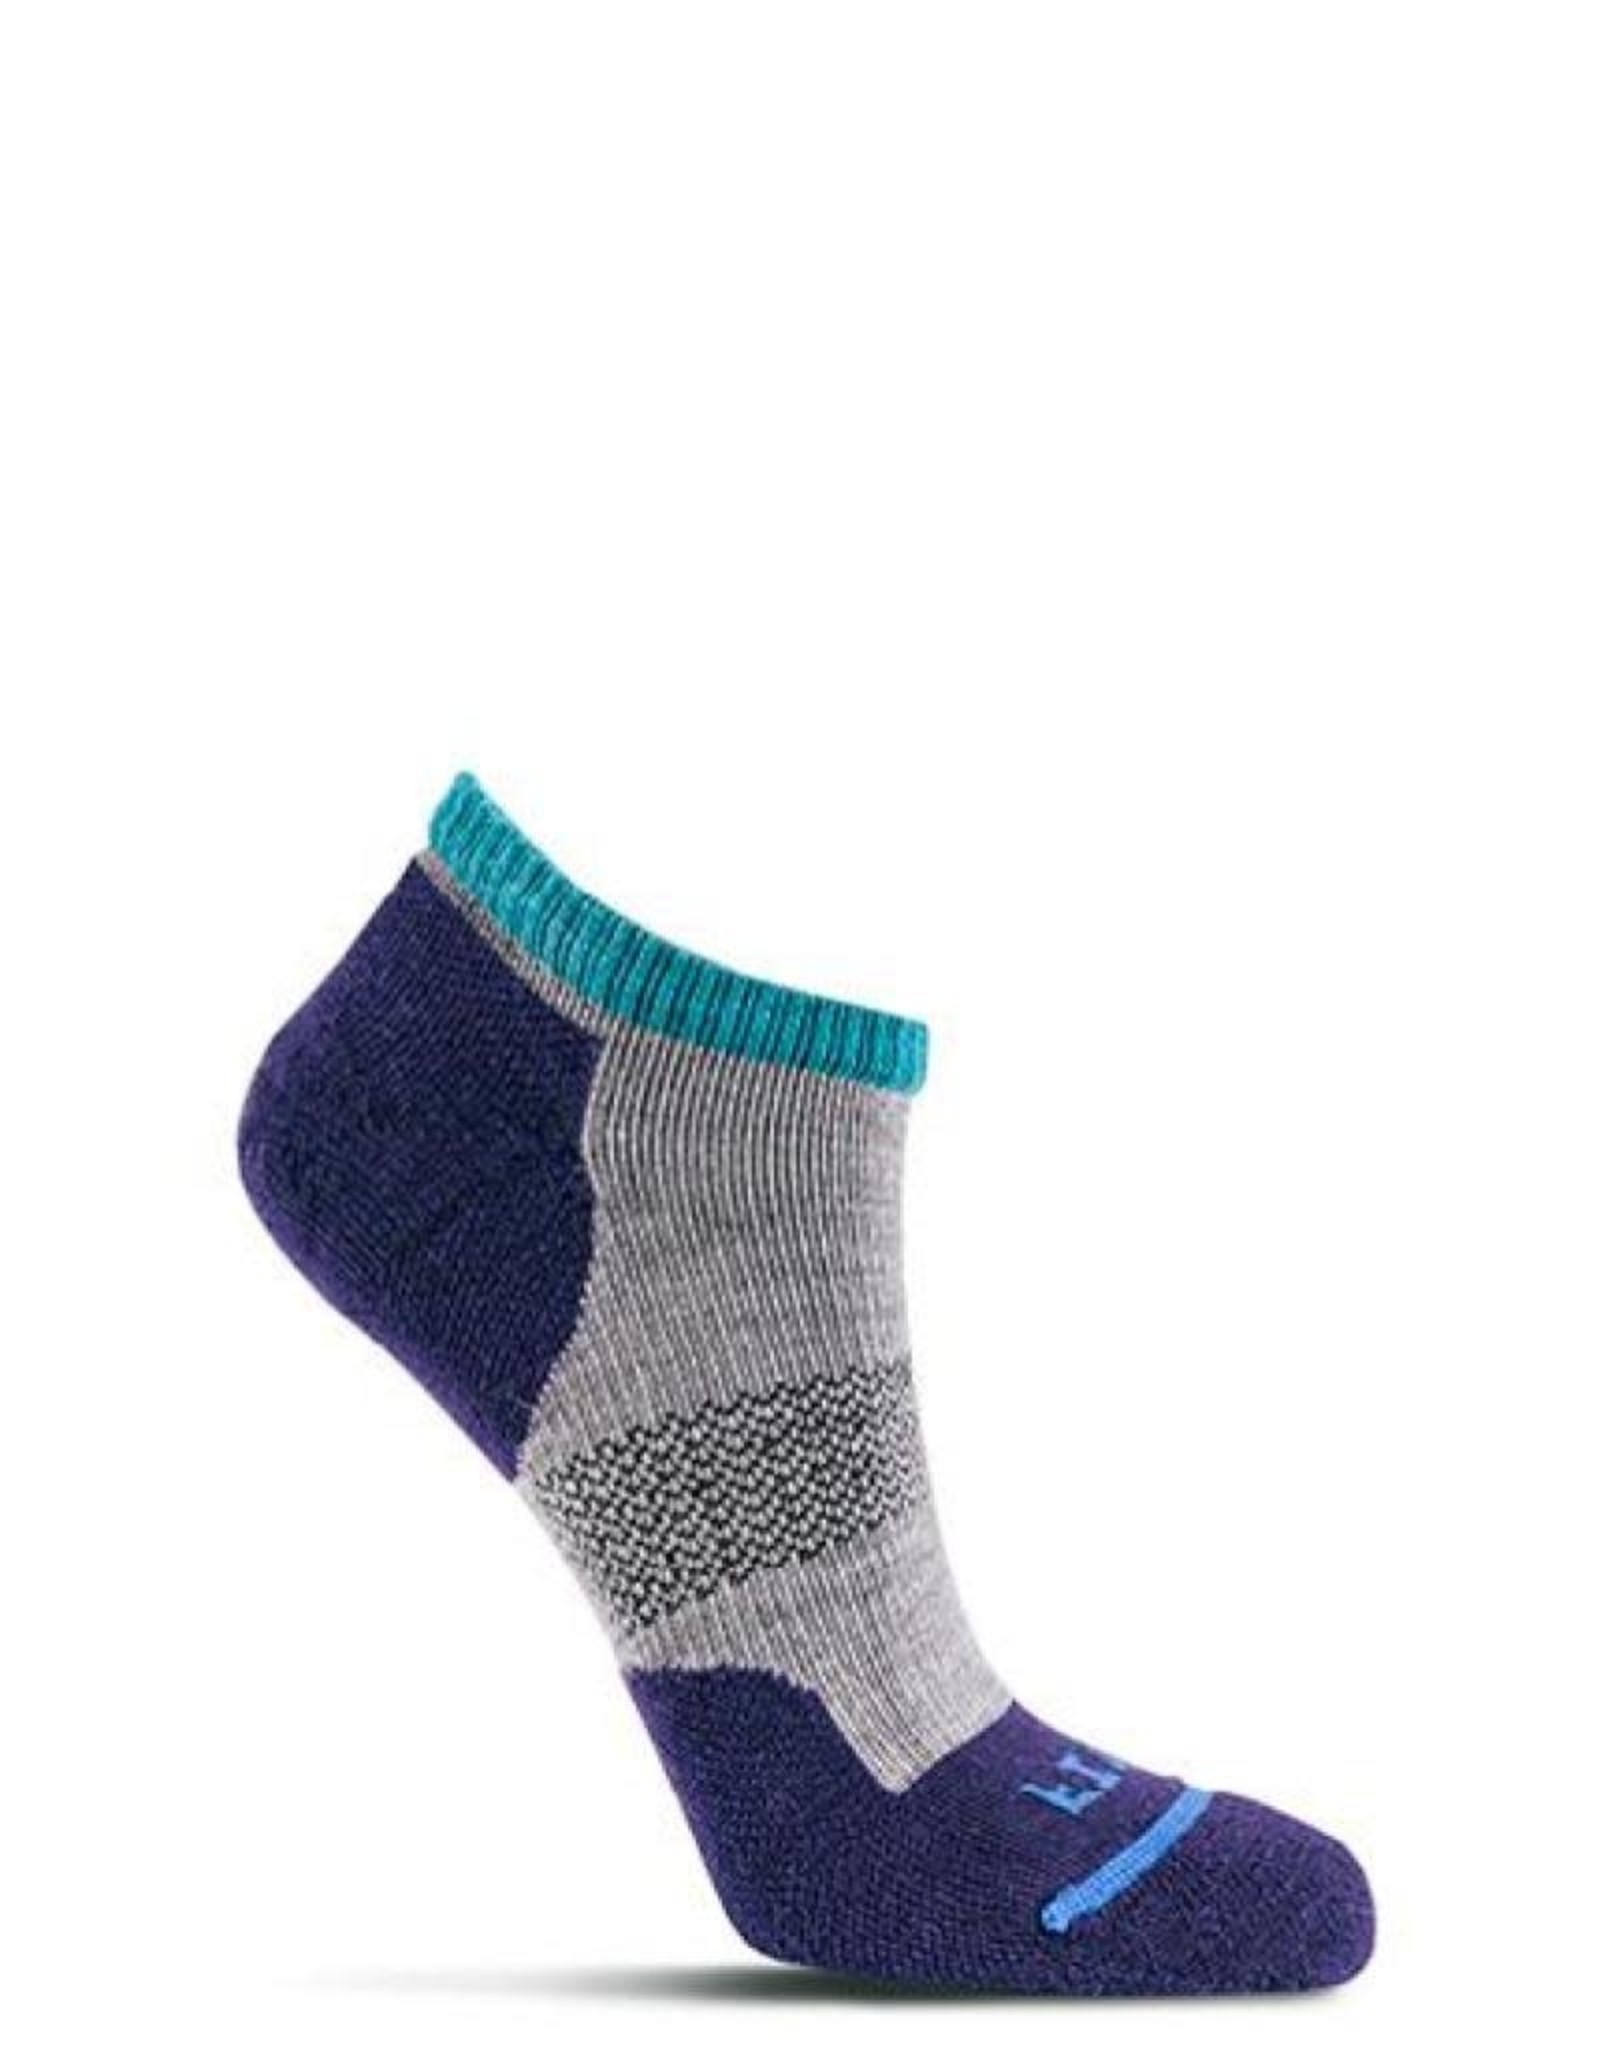 FITS Micro Light Runner Low Sock